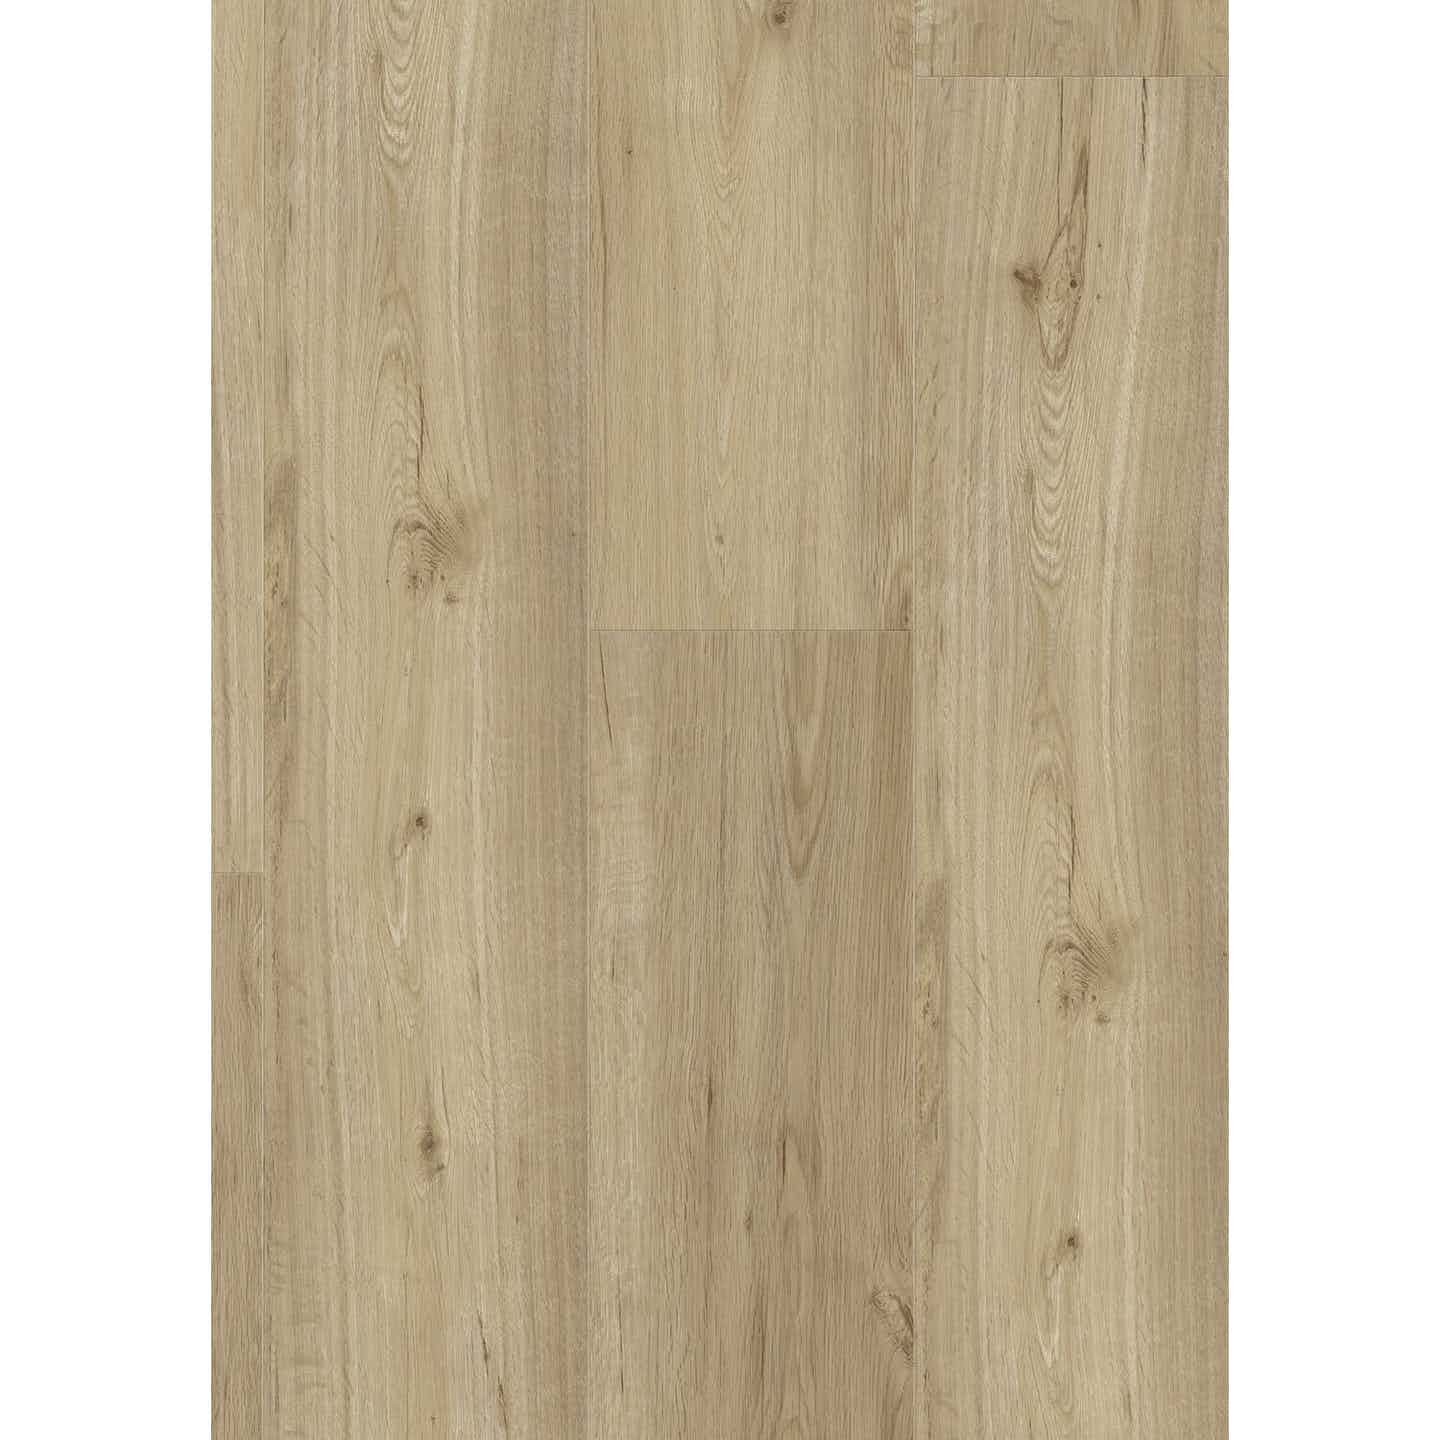 Gerflor Panel winylowy LVT Columbia Taupe 4 mm